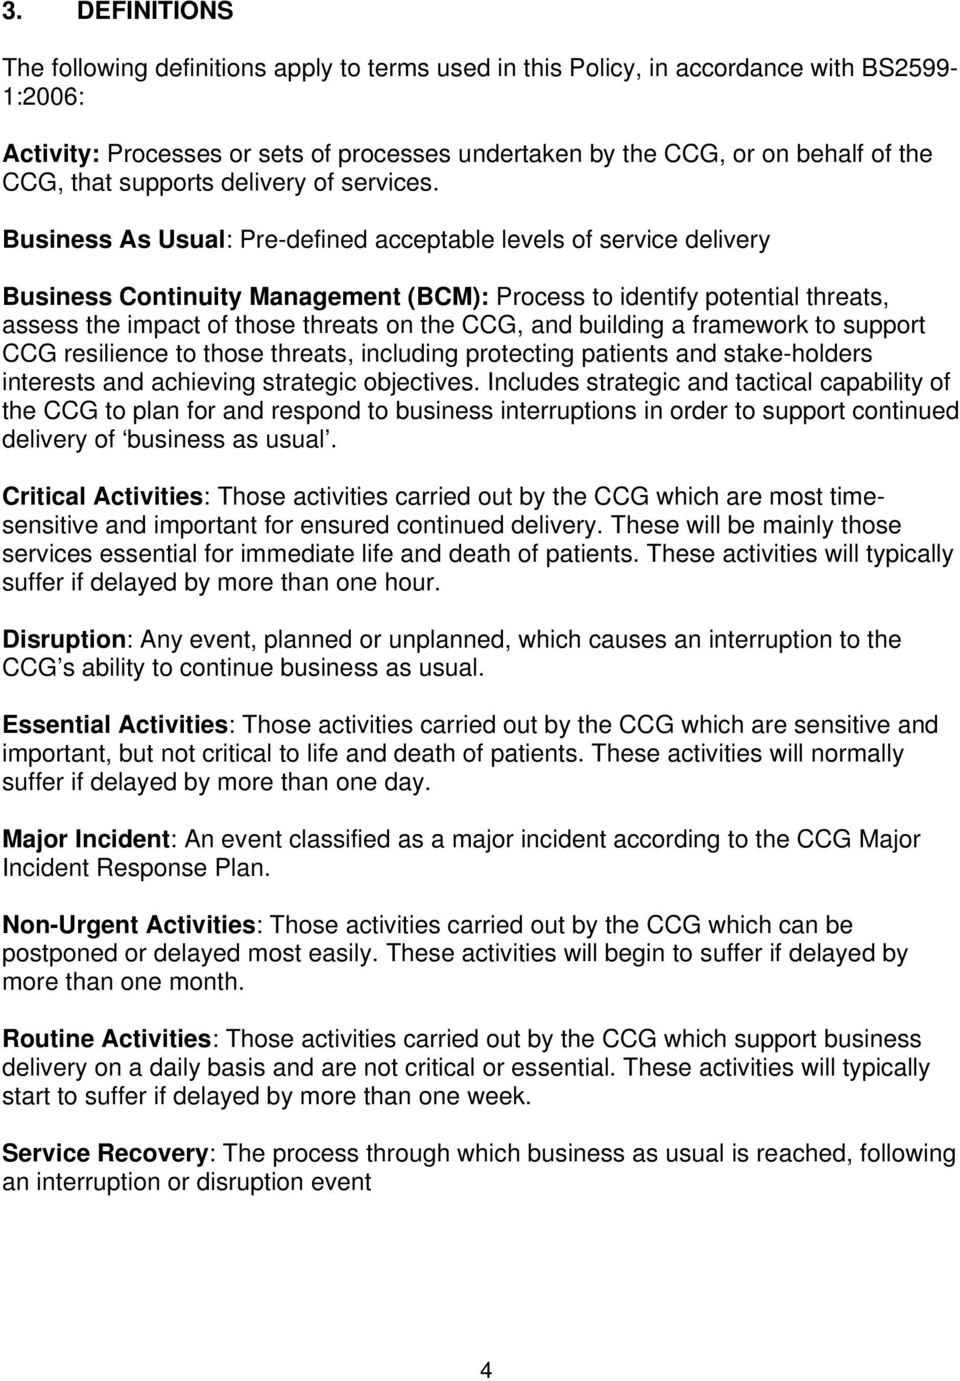 Business As Usual: Pre-defined acceptable levels of service delivery Business Continuity Management (BCM): Process to identify potential threats, assess the impact of those threats on the CCG, and